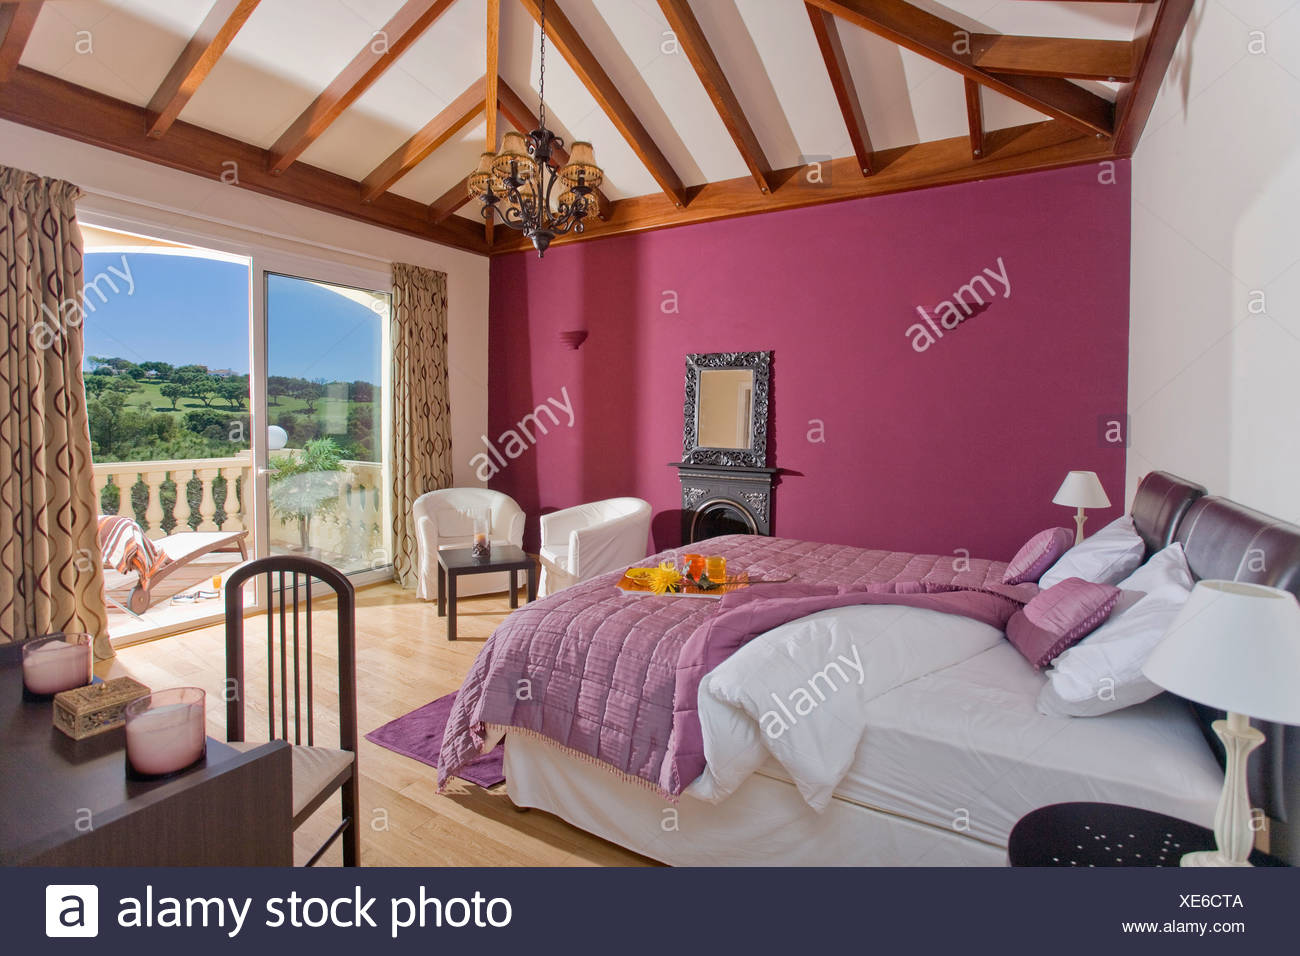 Purple Quilt And White Bedlinen On Bed In Pink Bedroom With Beamed